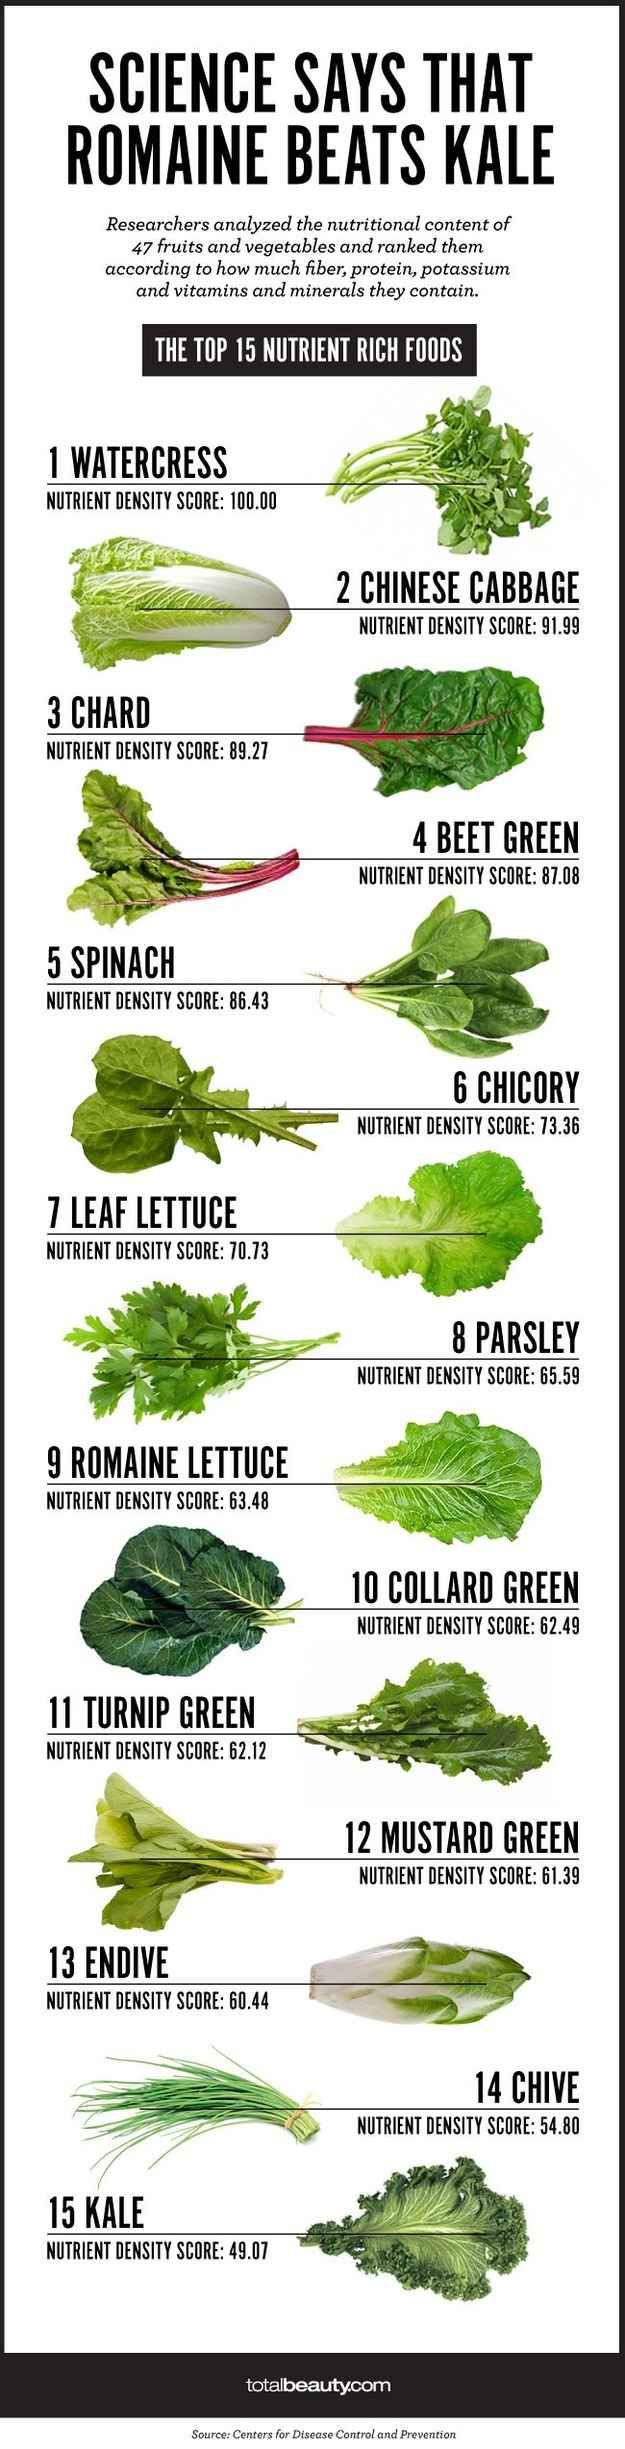 For choosing the best veggies. - Spinach <3